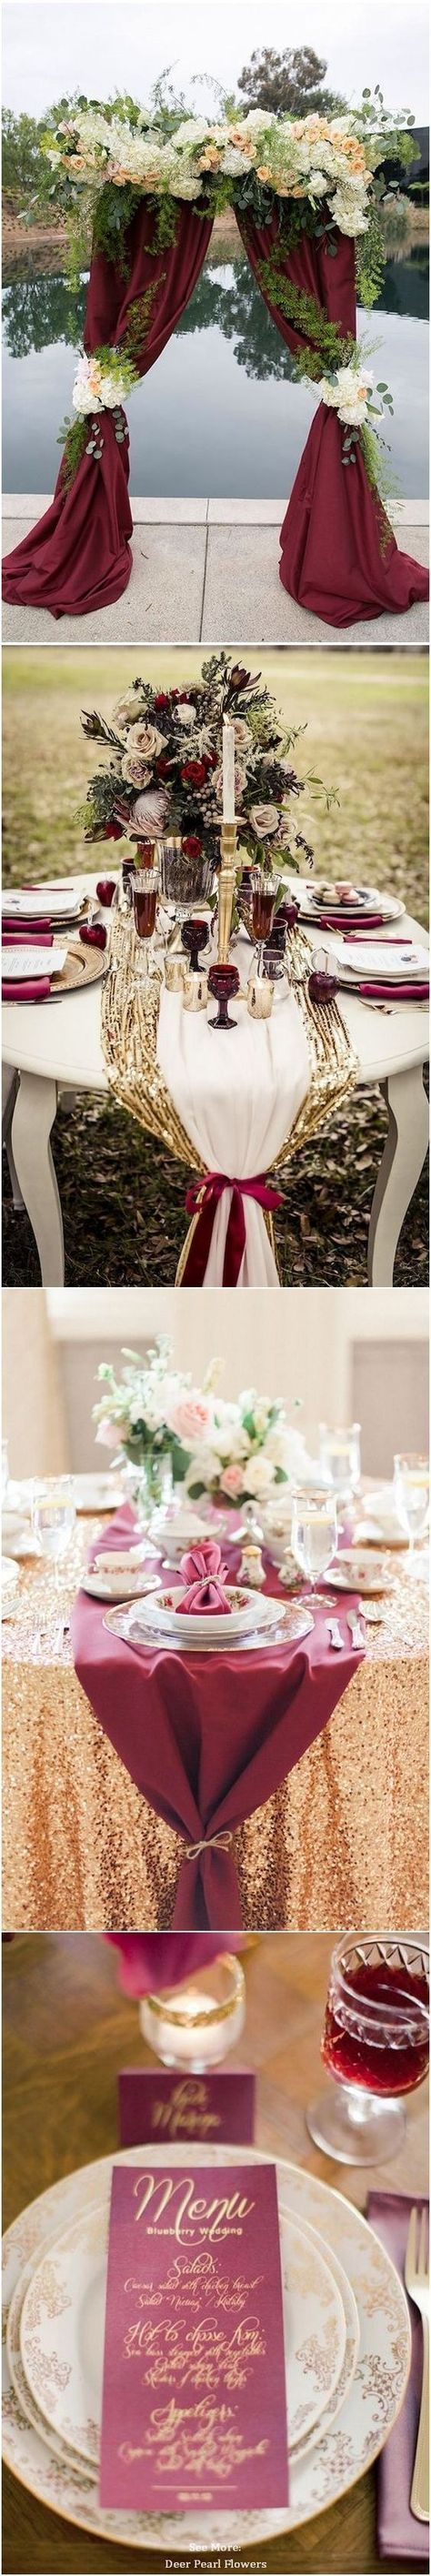 burgundy and gold fall wedding color ideas / http://www.deerpearlflowers.com/burgundy-and-gold-wedding-ideas/ #WeddingIdeasReception